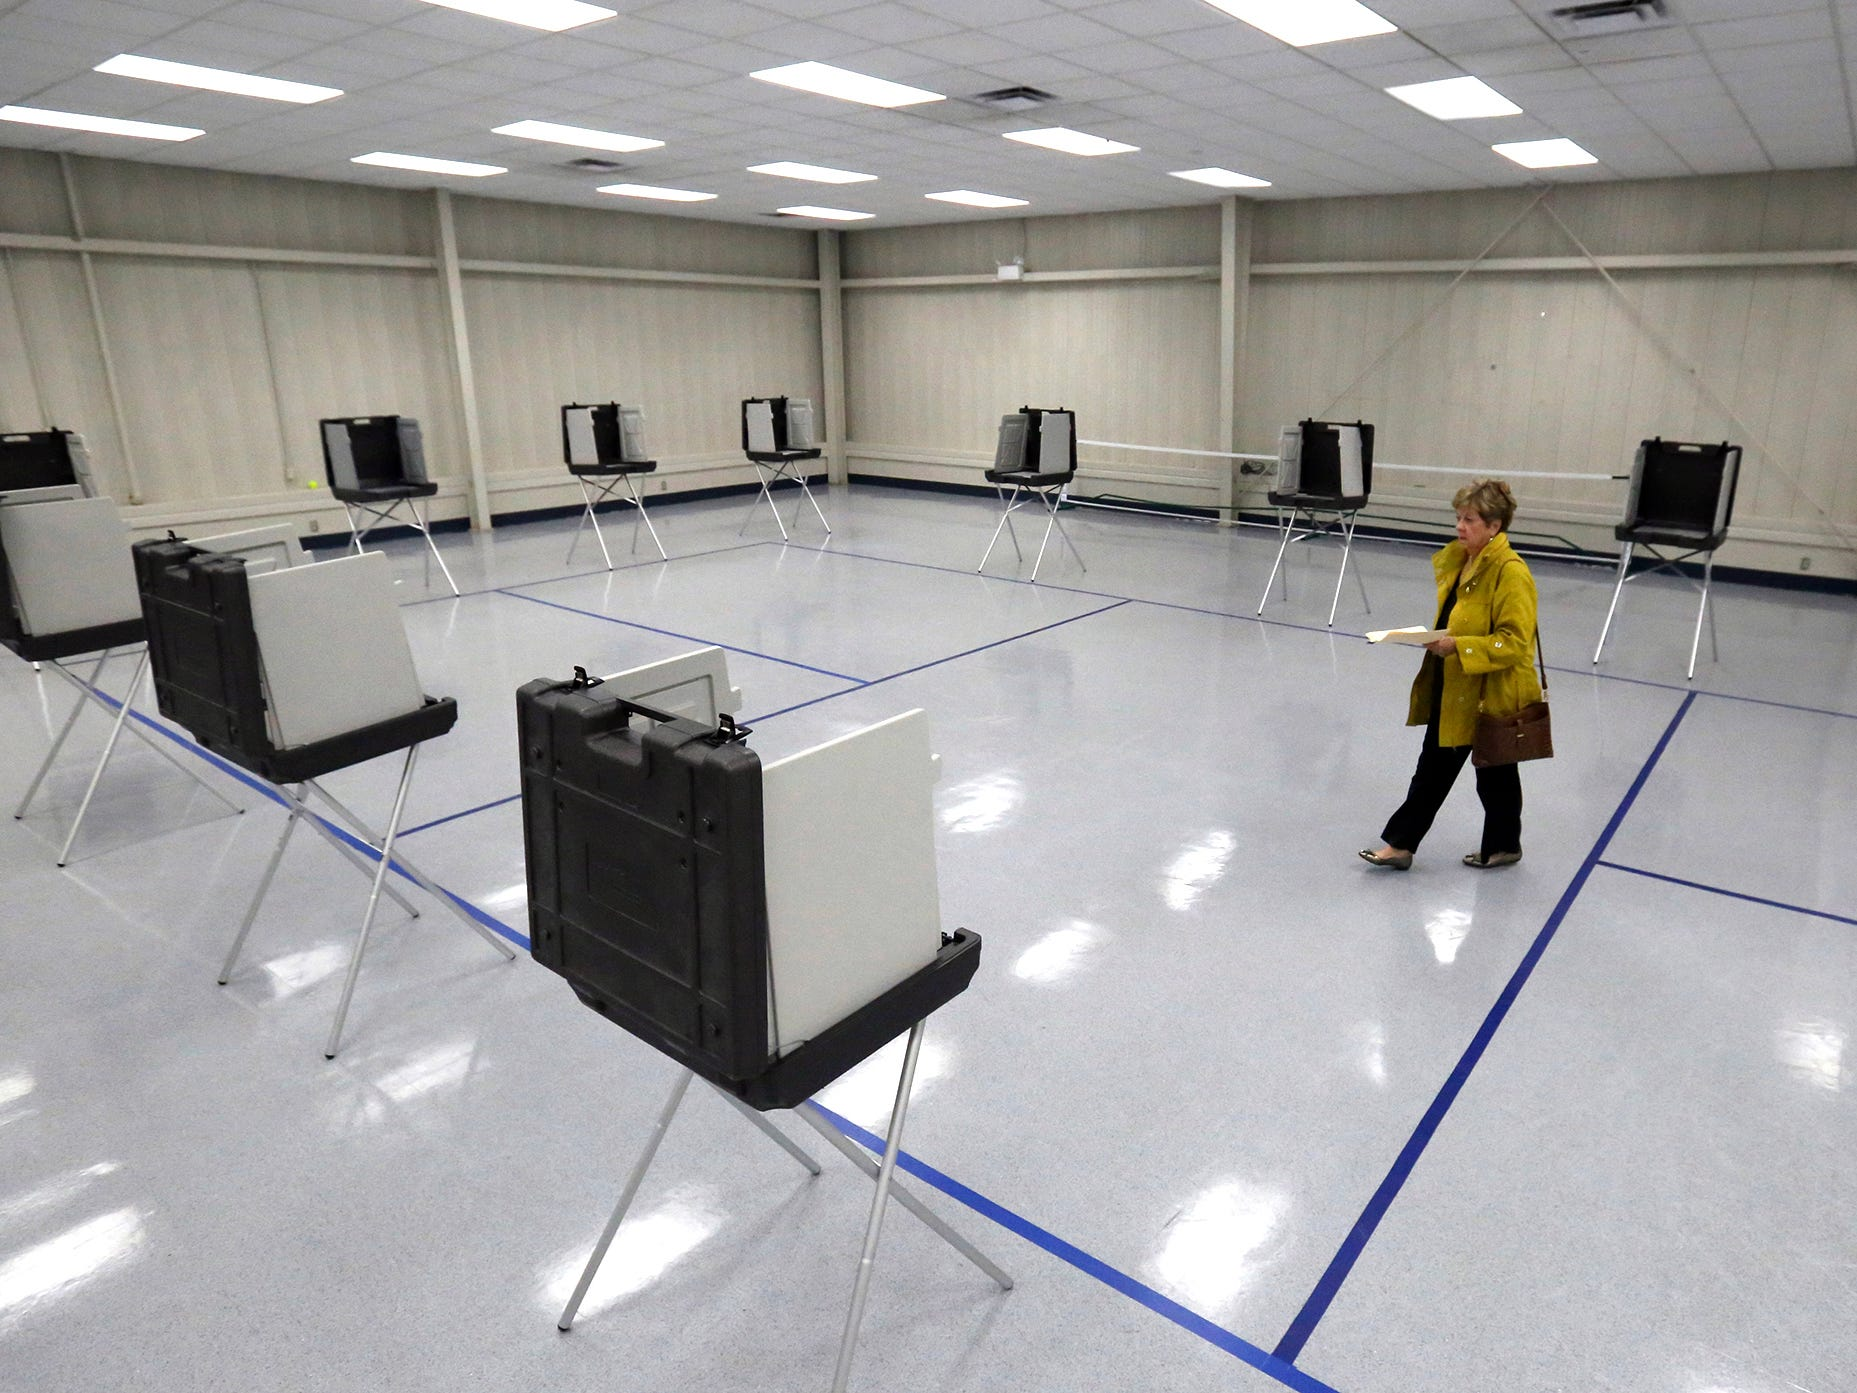 Kathleen McCann walks to cast her vote  in a runoff election Tuesday, Nov. 27, 2018 in Gulfport, Miss.  Mississippi voters are deciding the last U.S. Senate race of the midterms, choosing between Democrat Mike Espy and Republican Sen. Cindy Hyde-Smith.